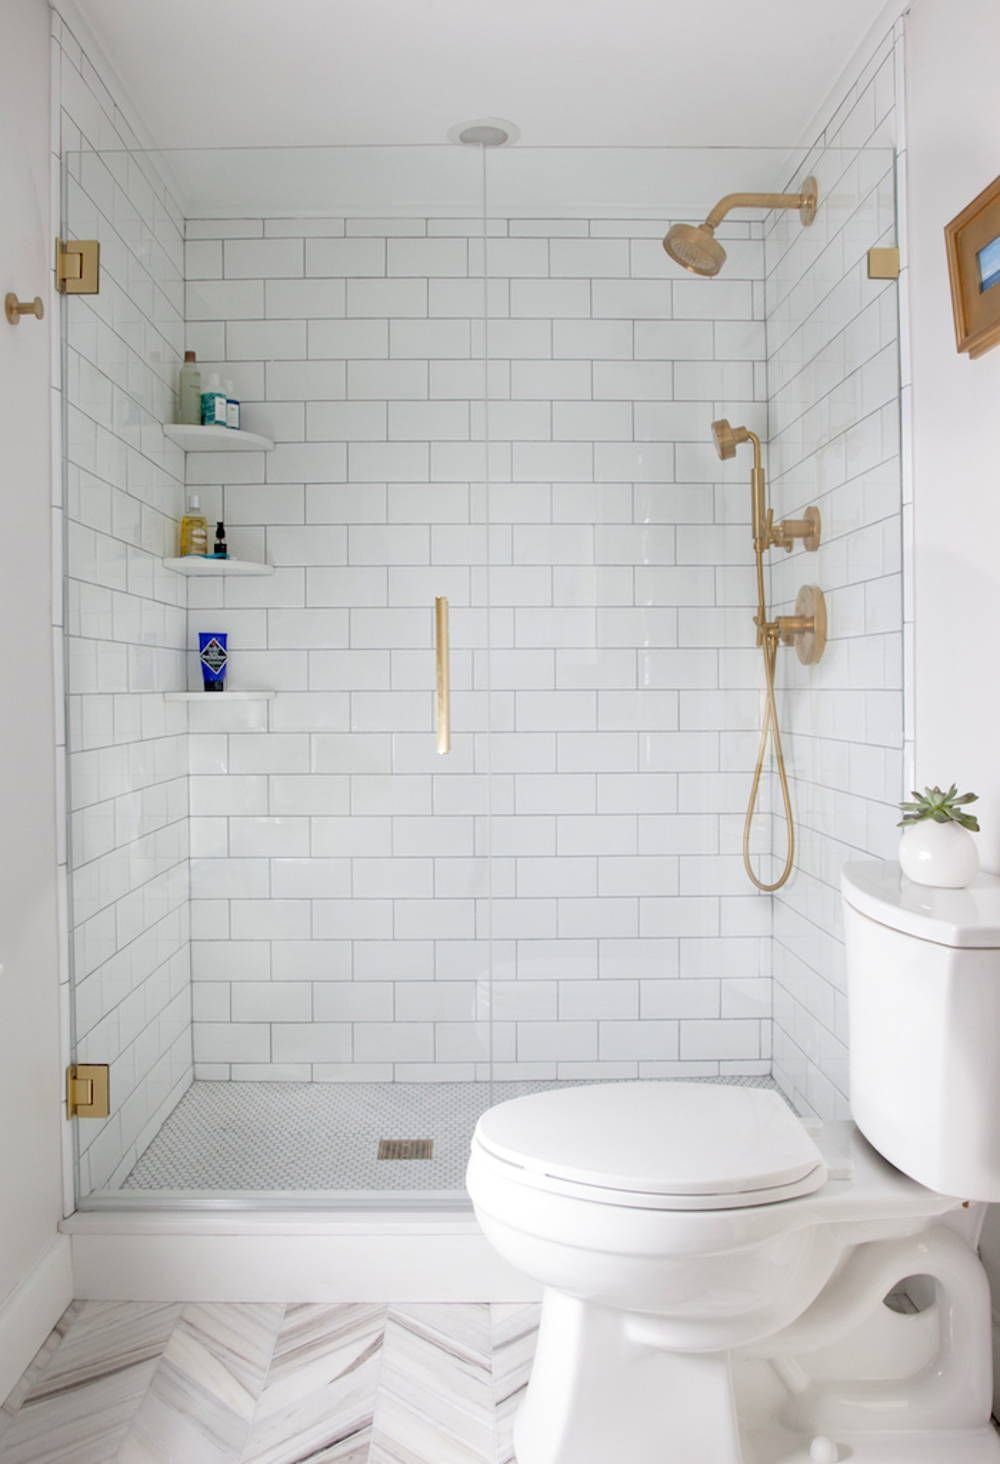 How To Make A Small Bathroom Look Bigger Atap Co In 2020 Bathroom Design Small Small Bathroom Remodel Master Suite Addition